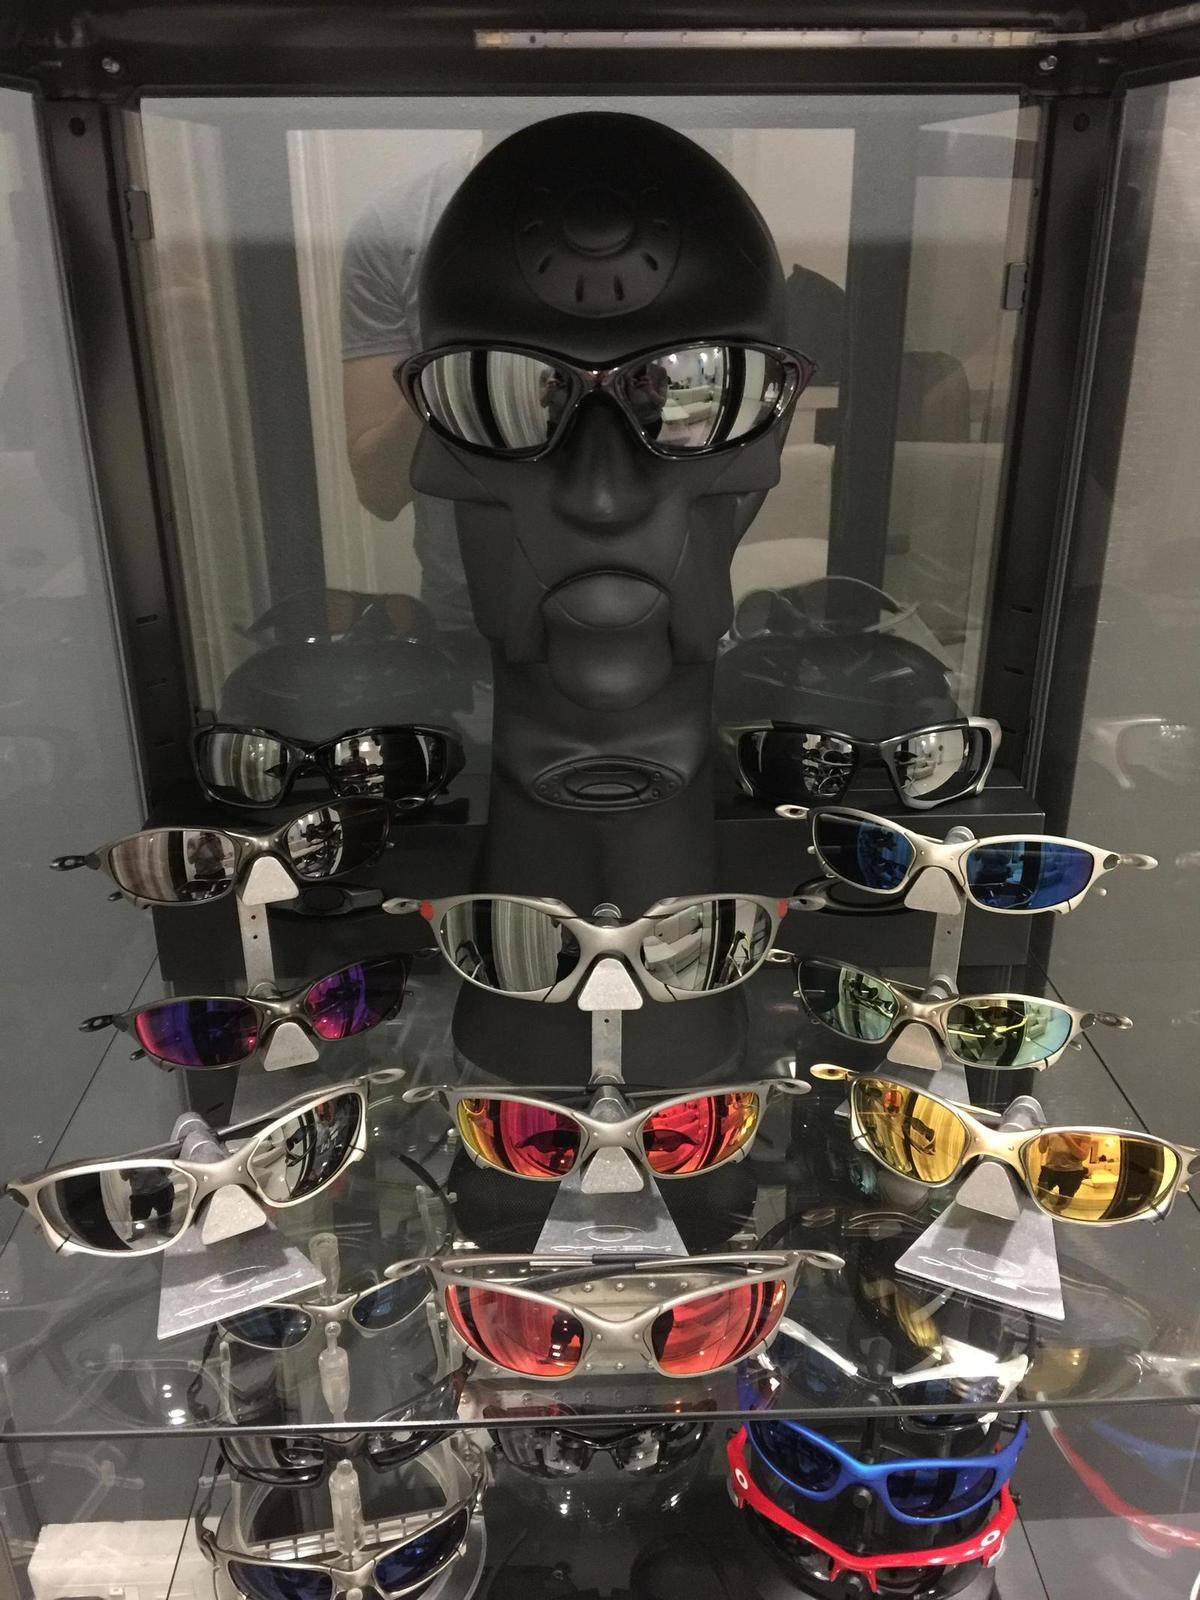 My humble Oakley collection - FppYFfh.jpg